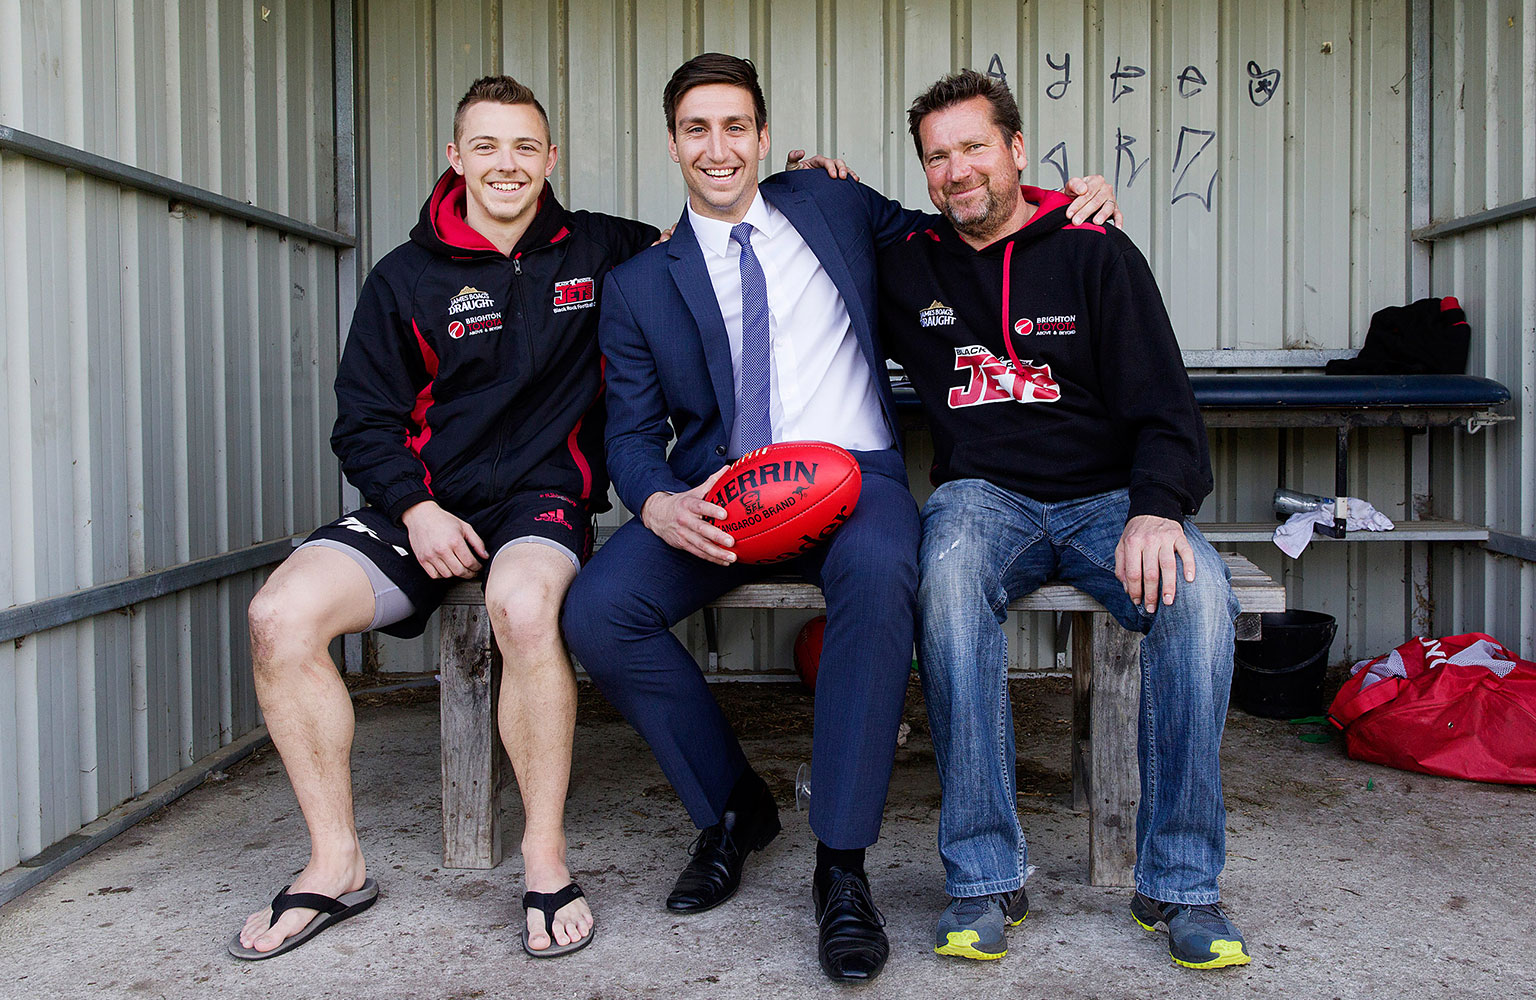 CEO of Southern Football League, David Cannizzo, with Blackrock Jets player and fan